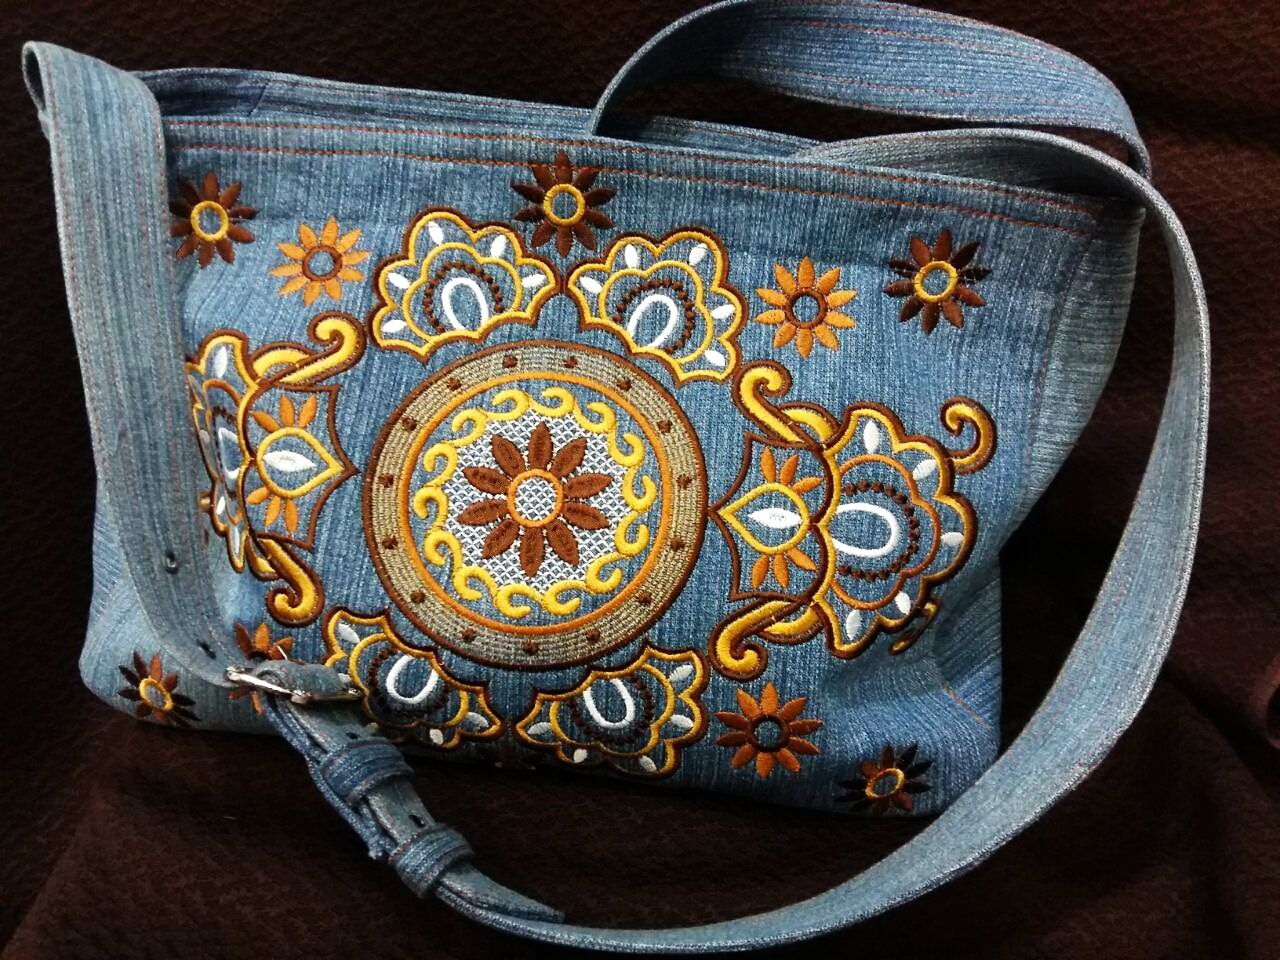 Embroidered Bag With Free Designs Project With Free Embroidery